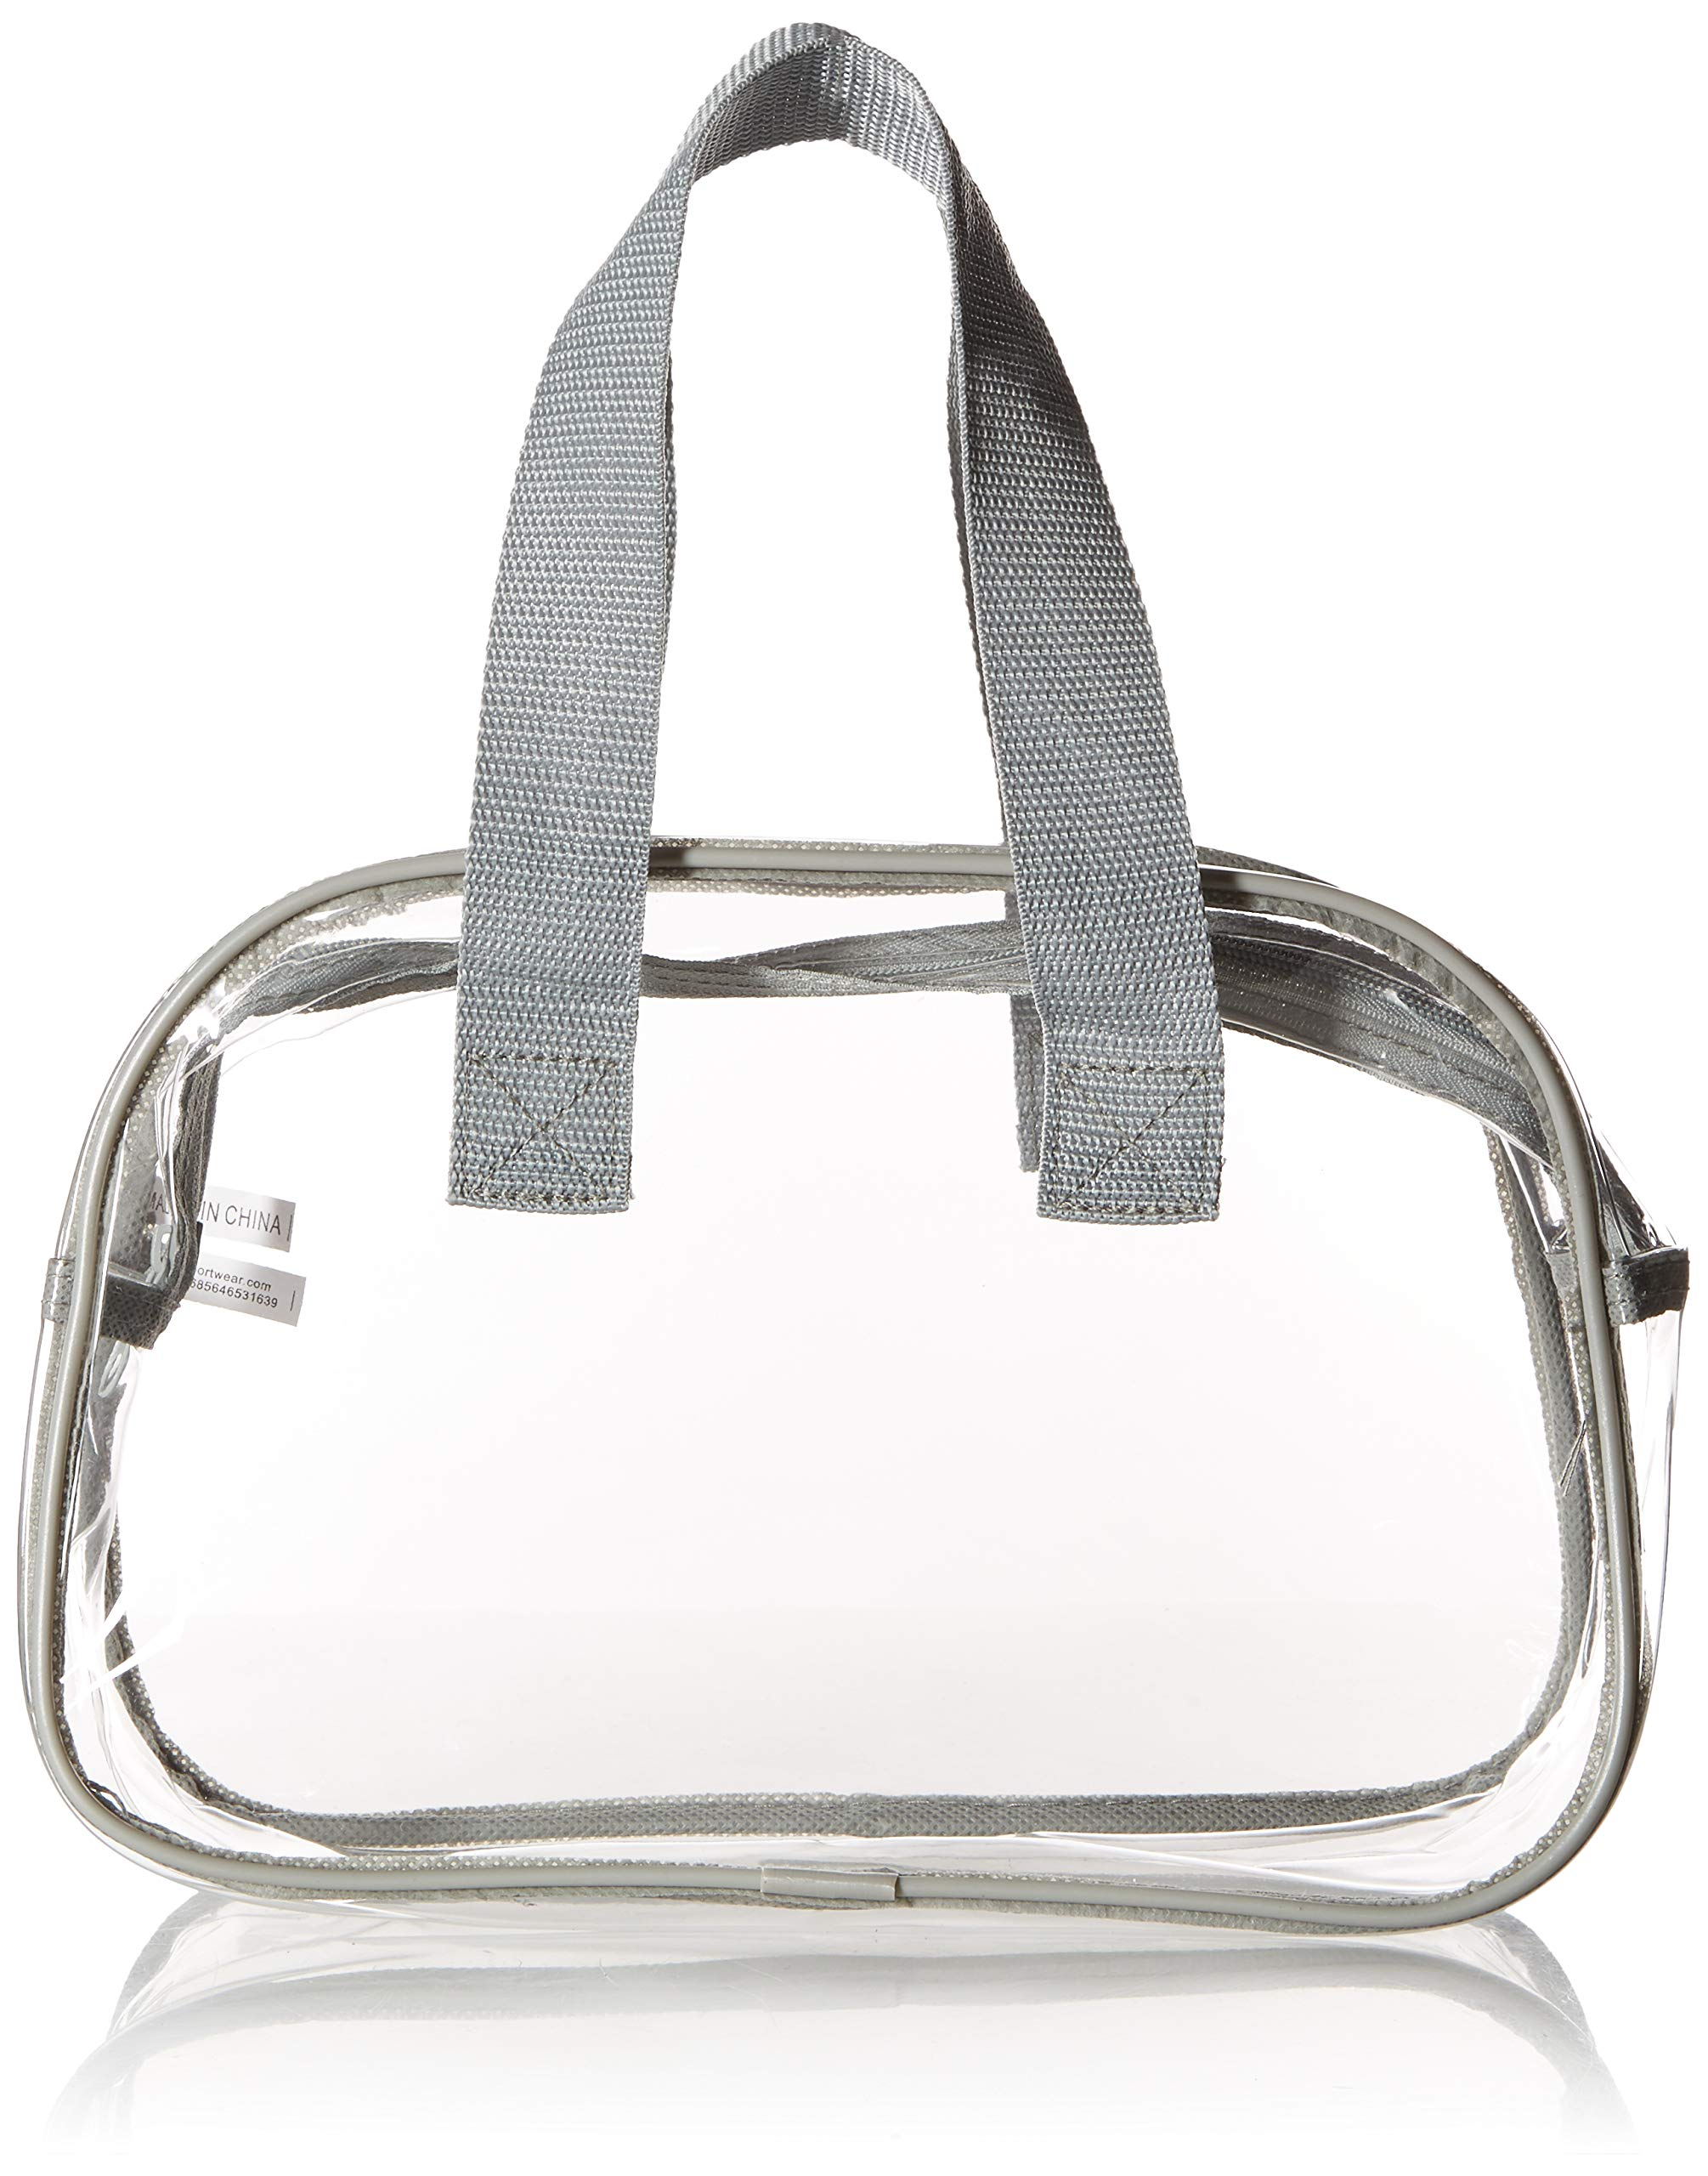 0611a9d8cb17 Nova Sport Wear Clear Purse That is Event Stadium Approved. Clear Handbags  for Cosmetics,